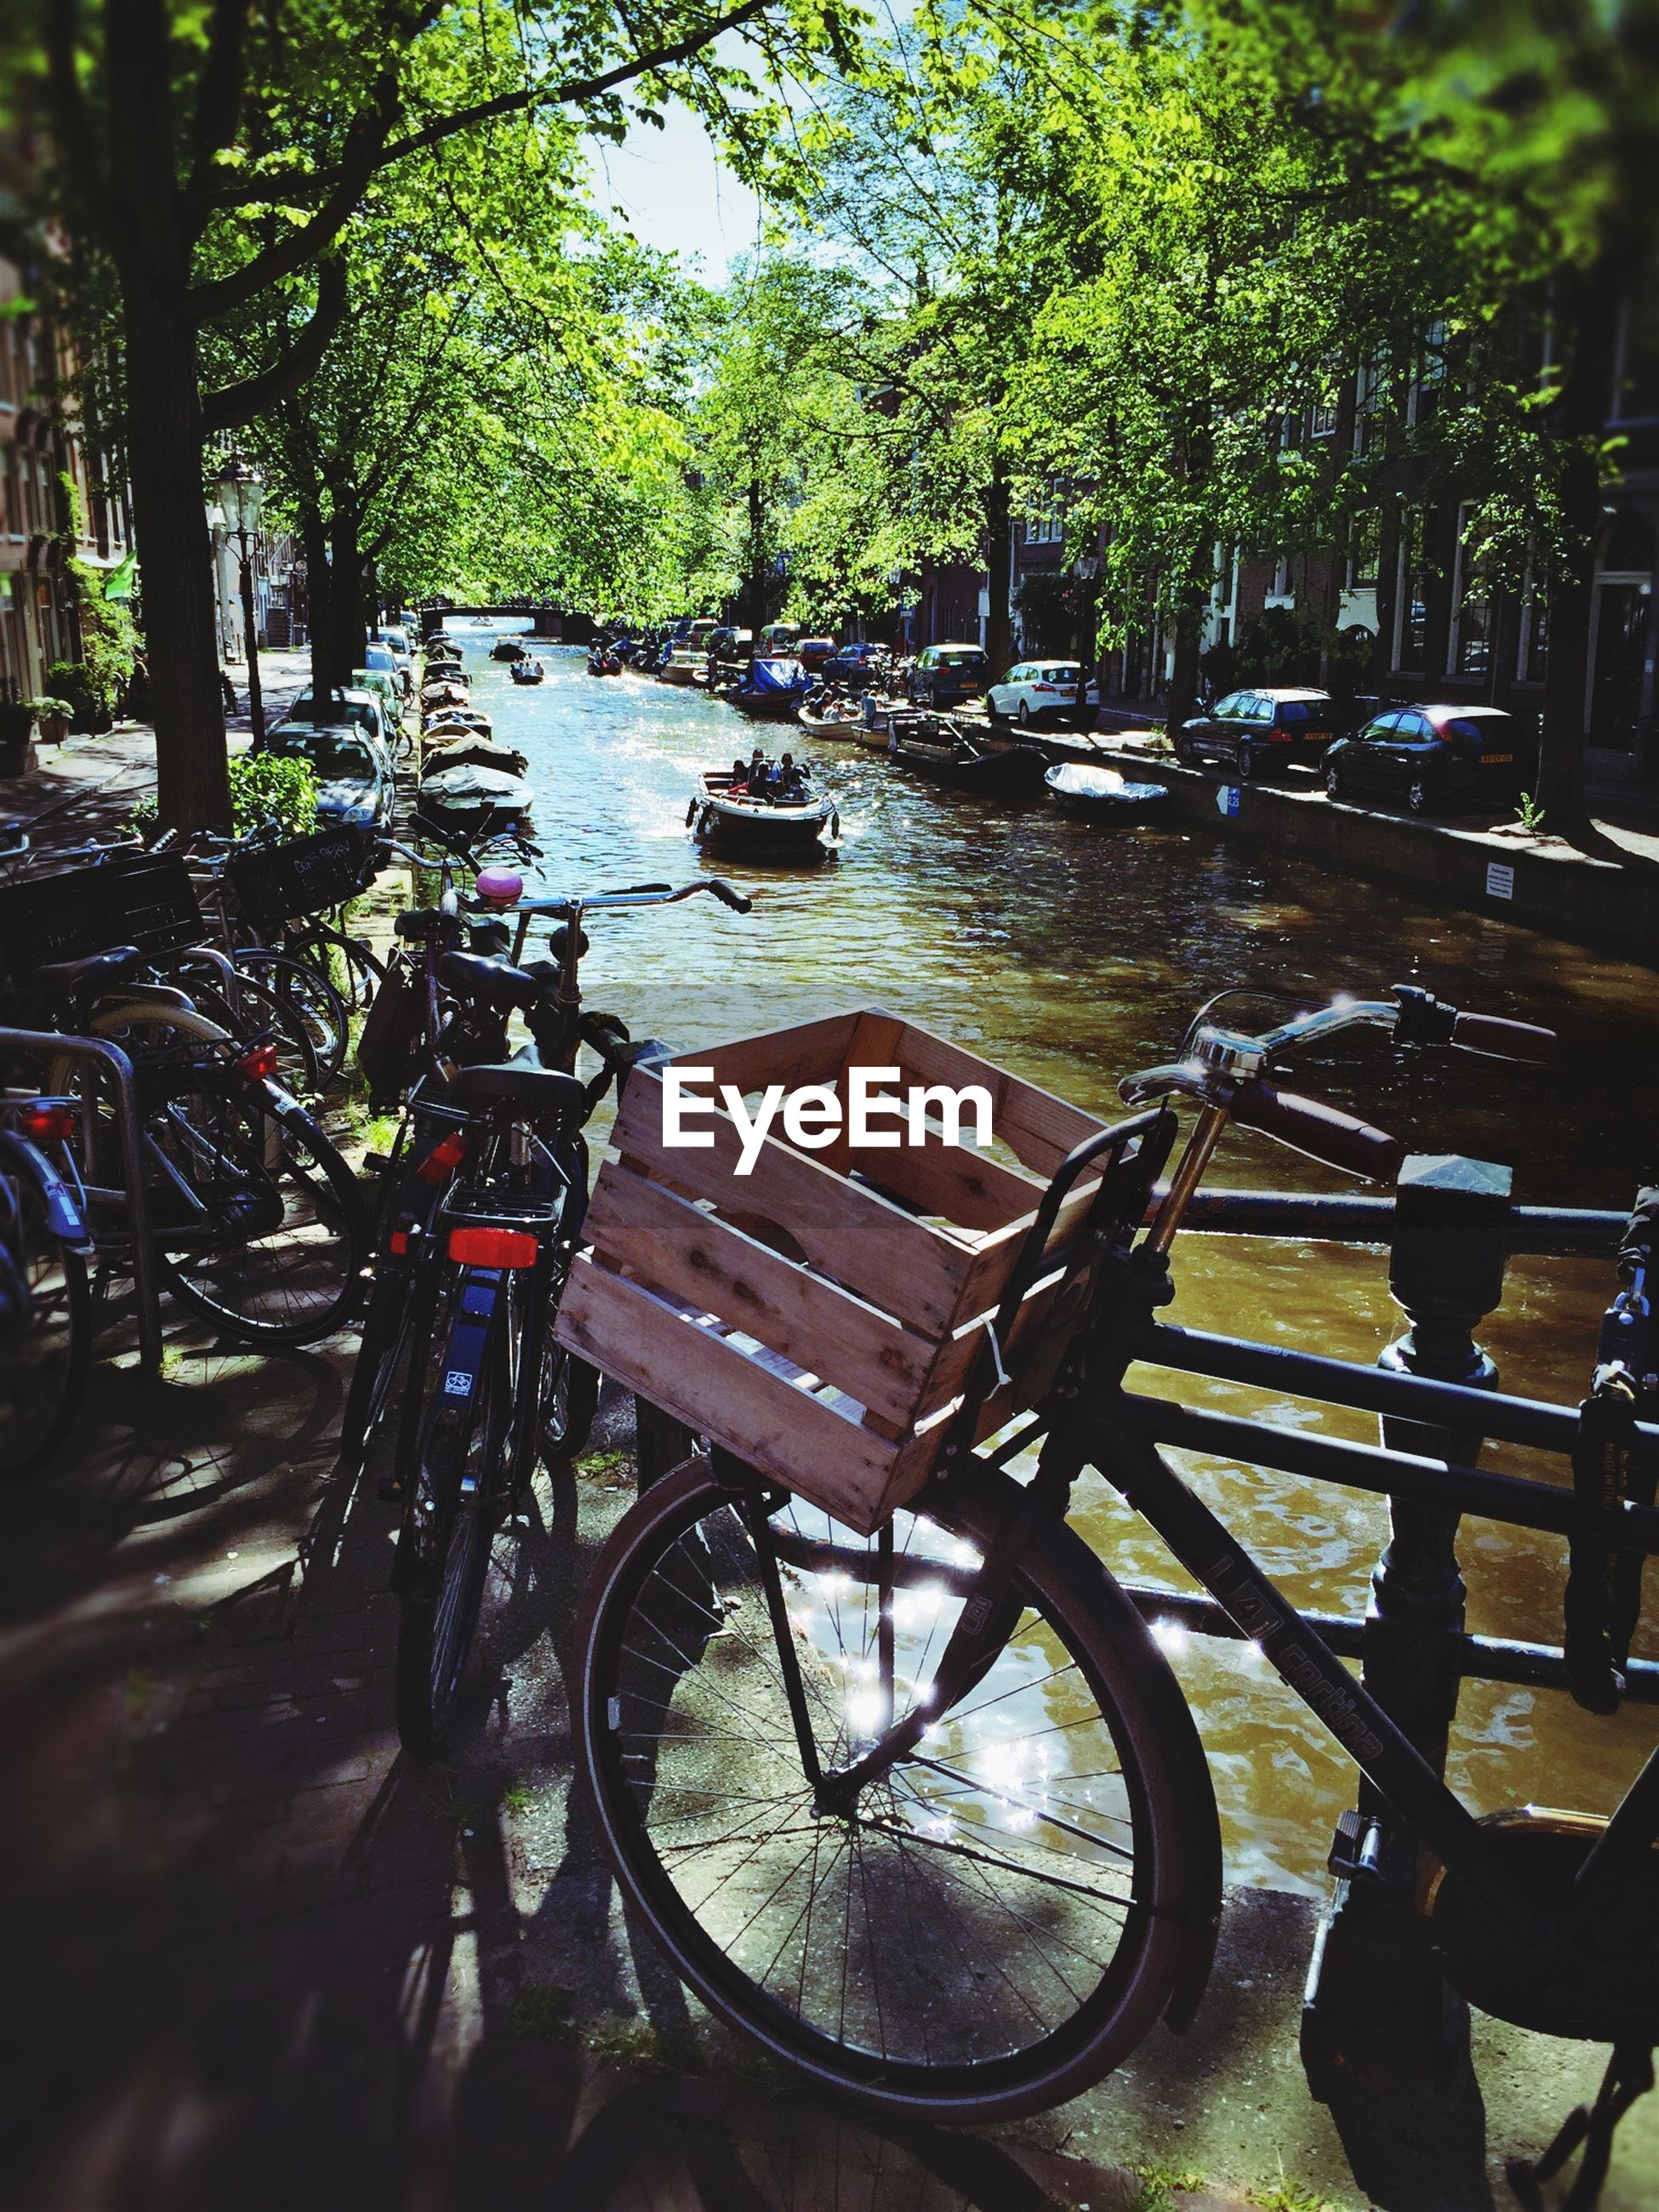 Bicycles parked by river amidst trees